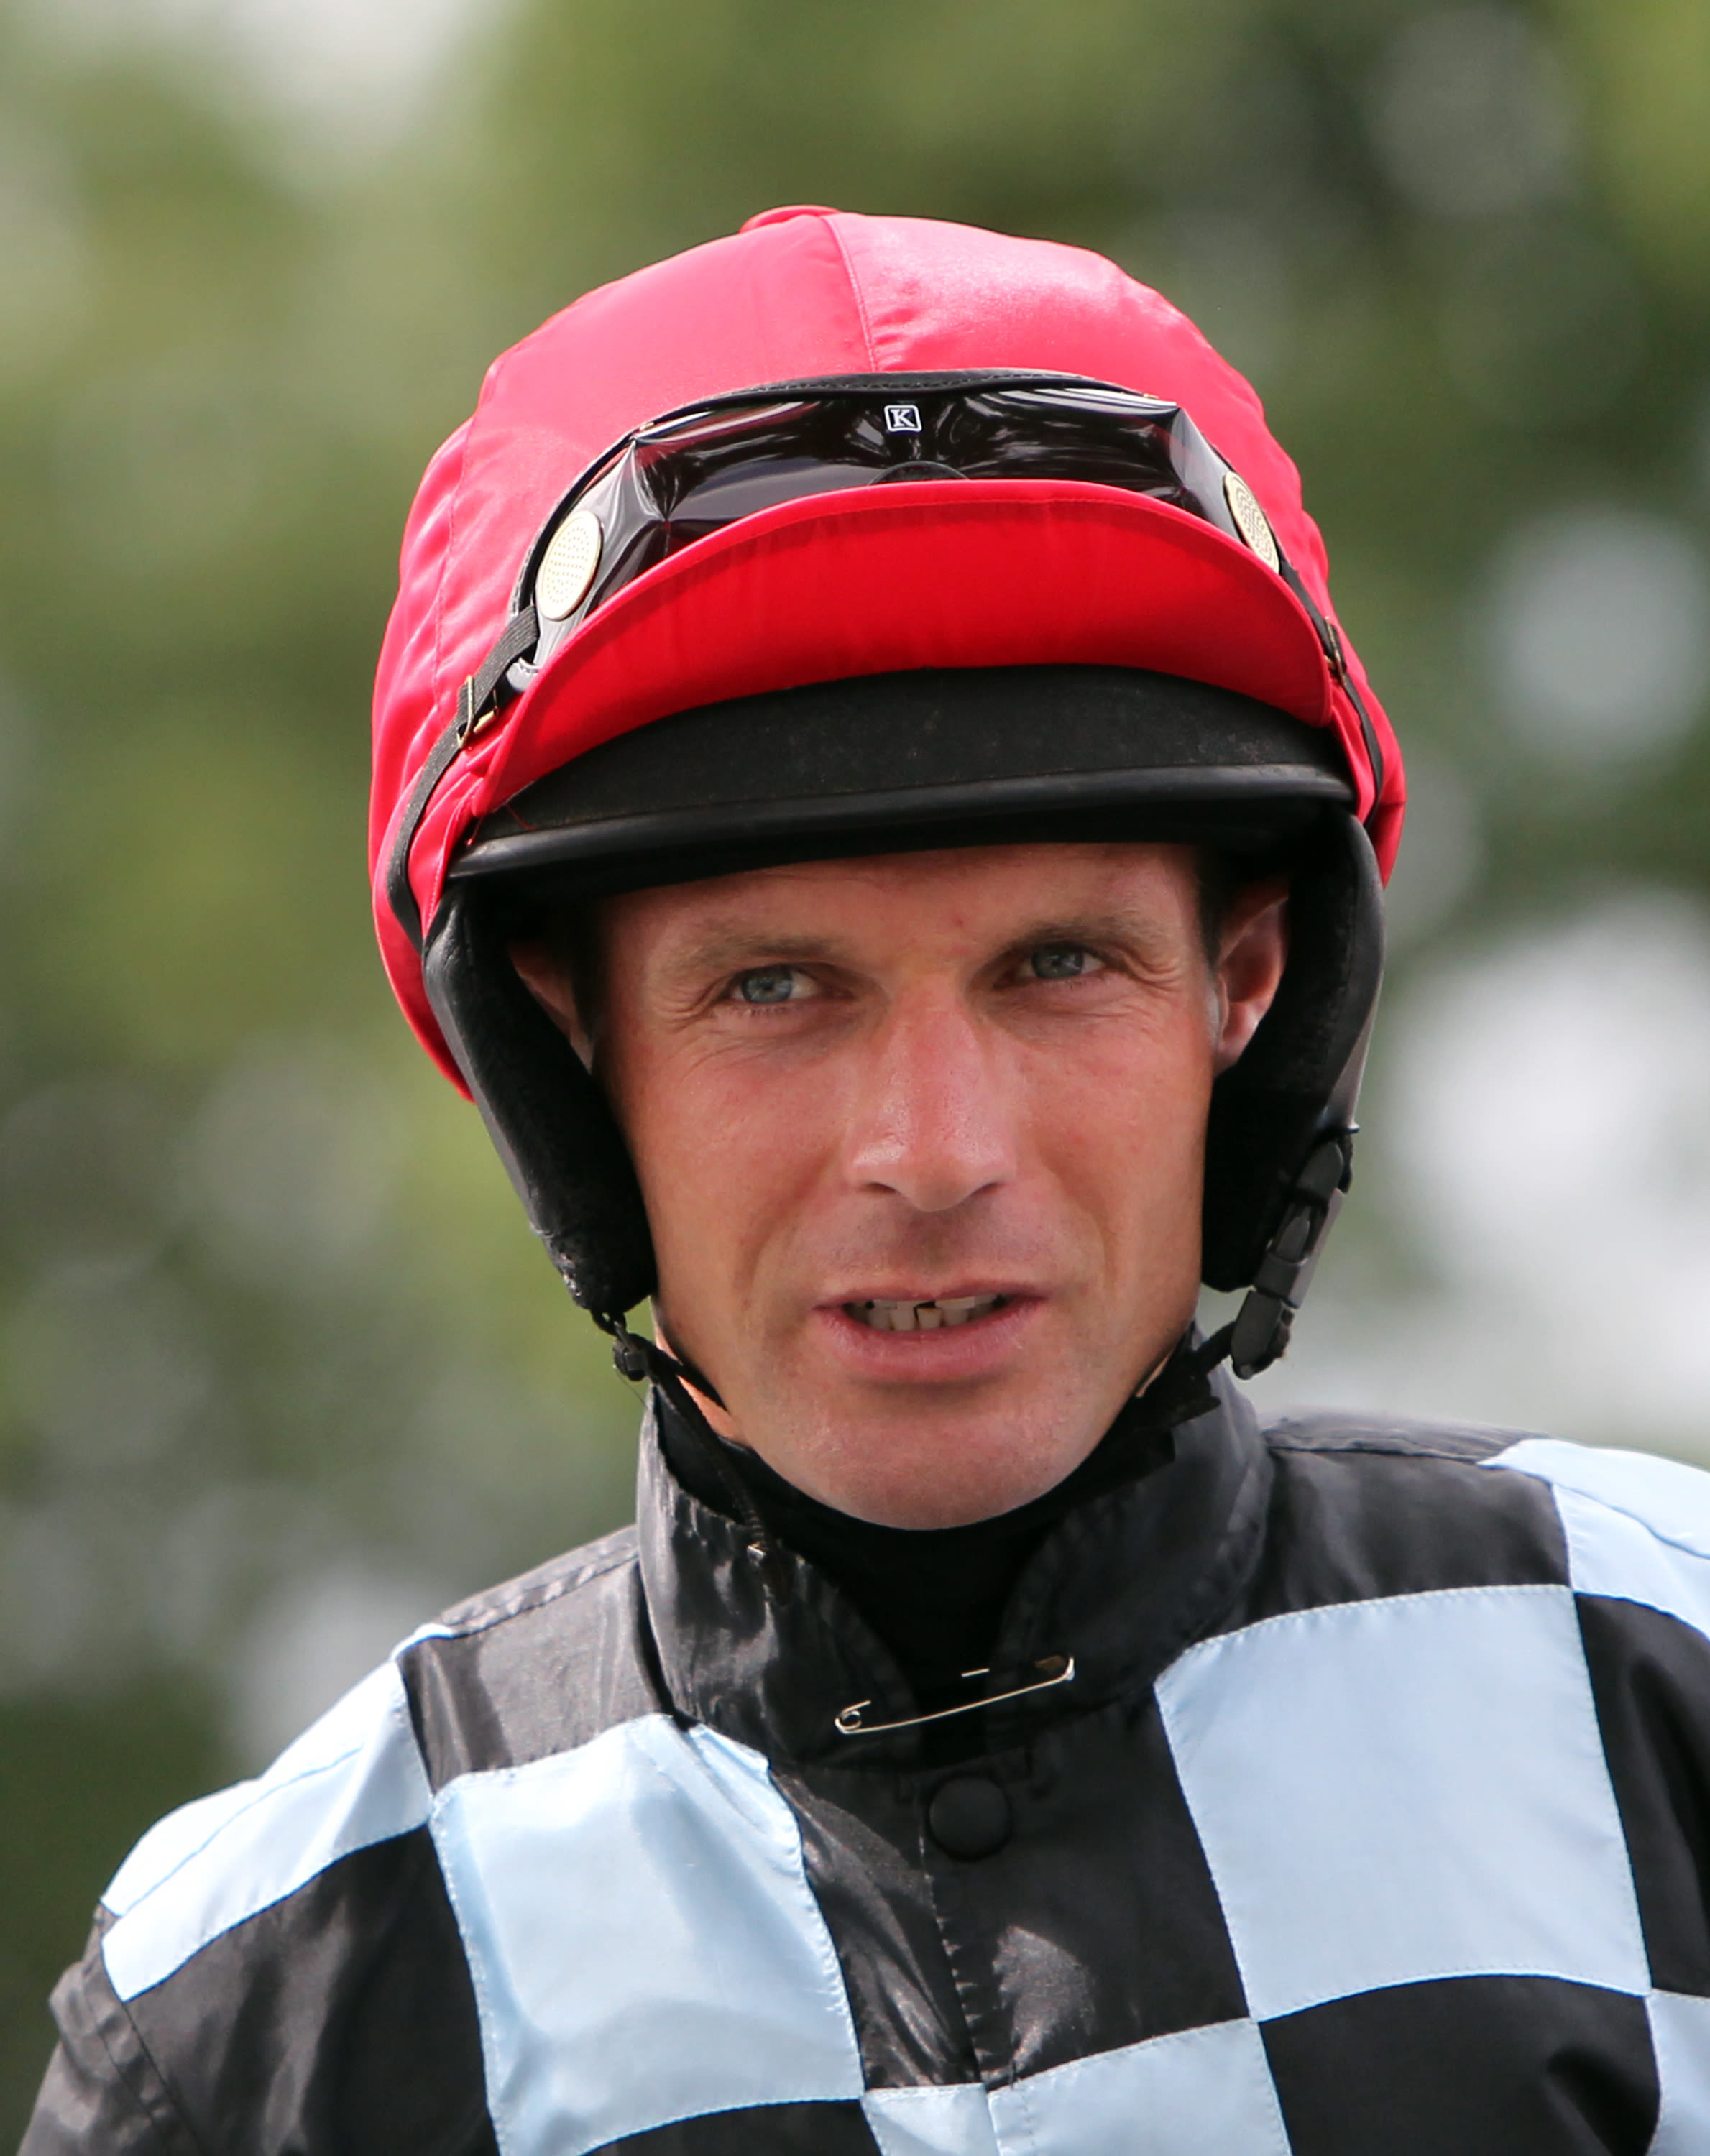 Cook was hurst in a weekend fall at Market Rasen